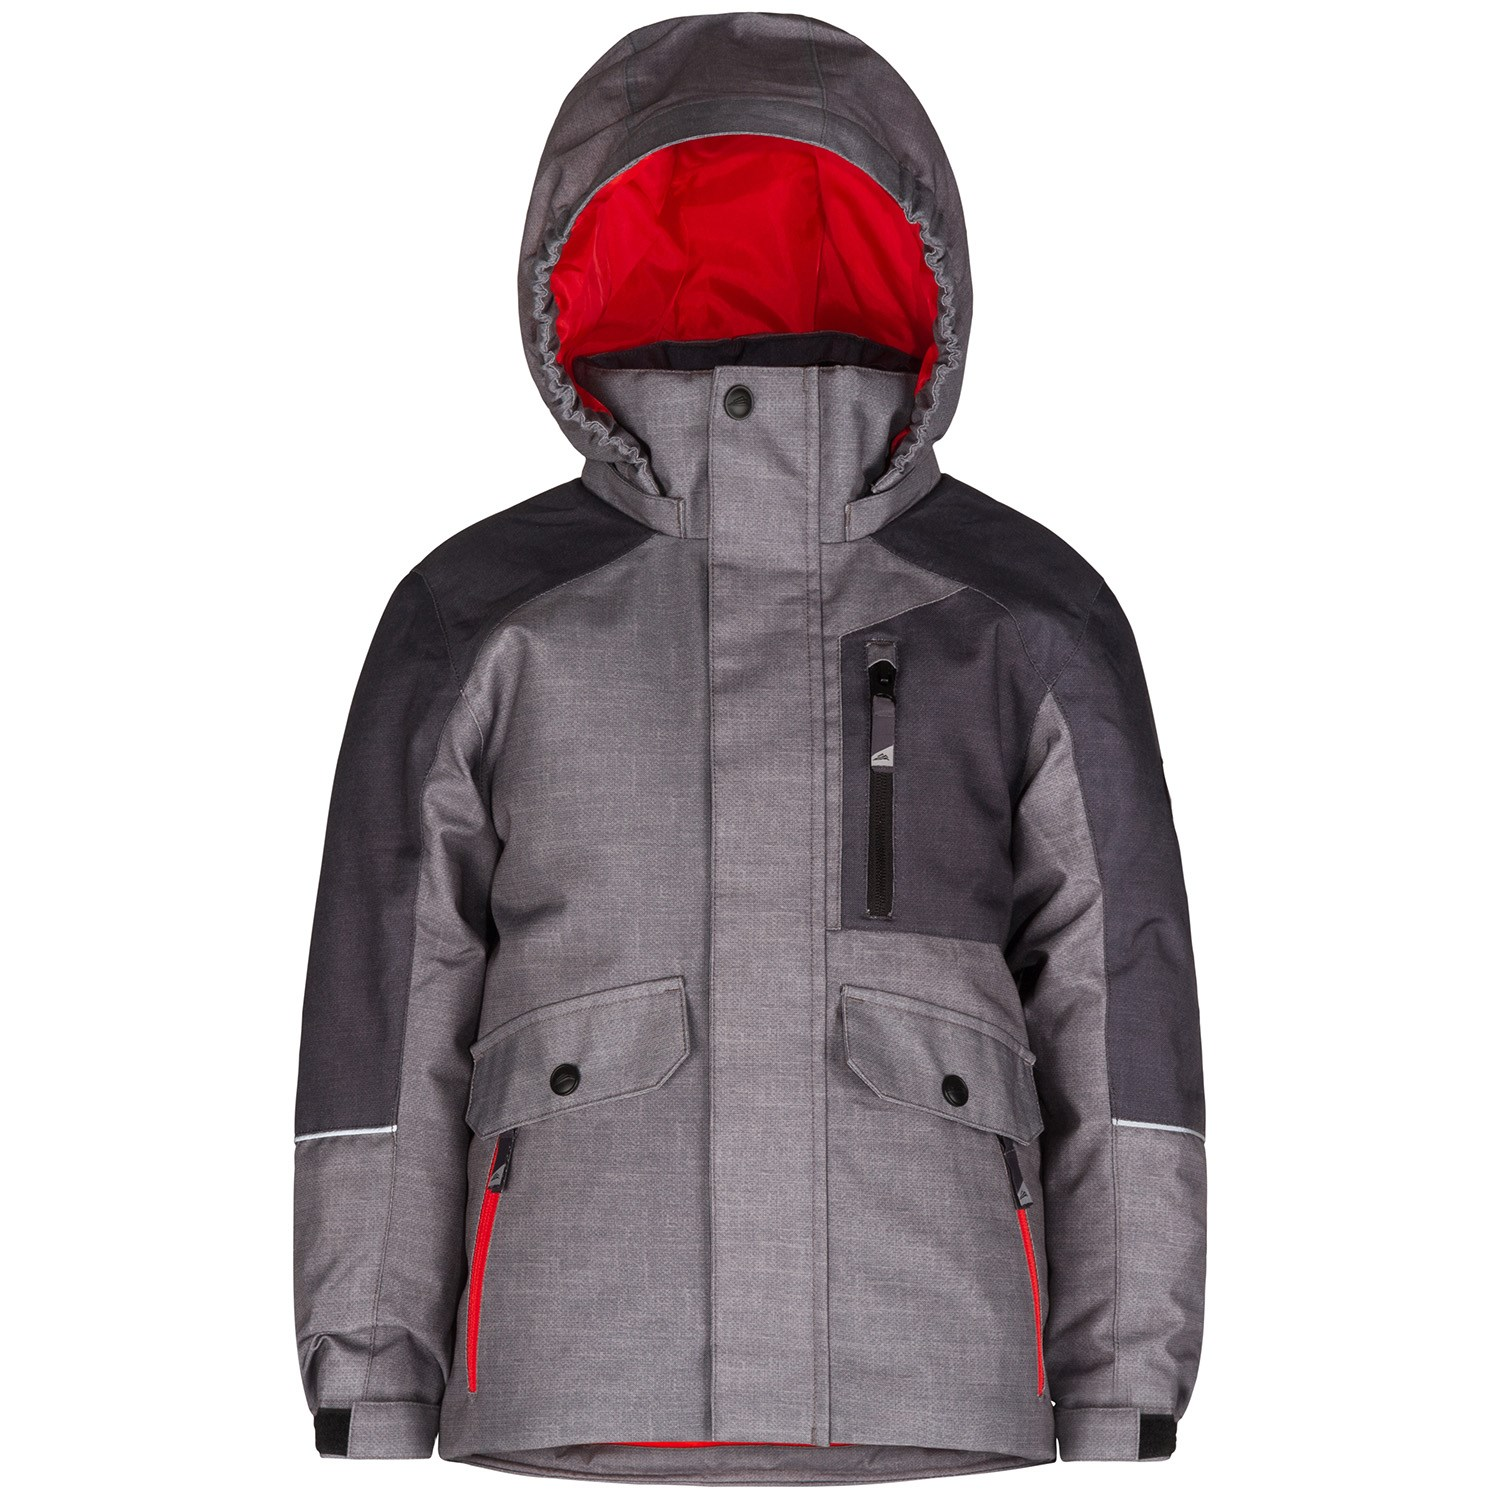 c16e4c4d6 Jupa Noah Jacket - Little Boys